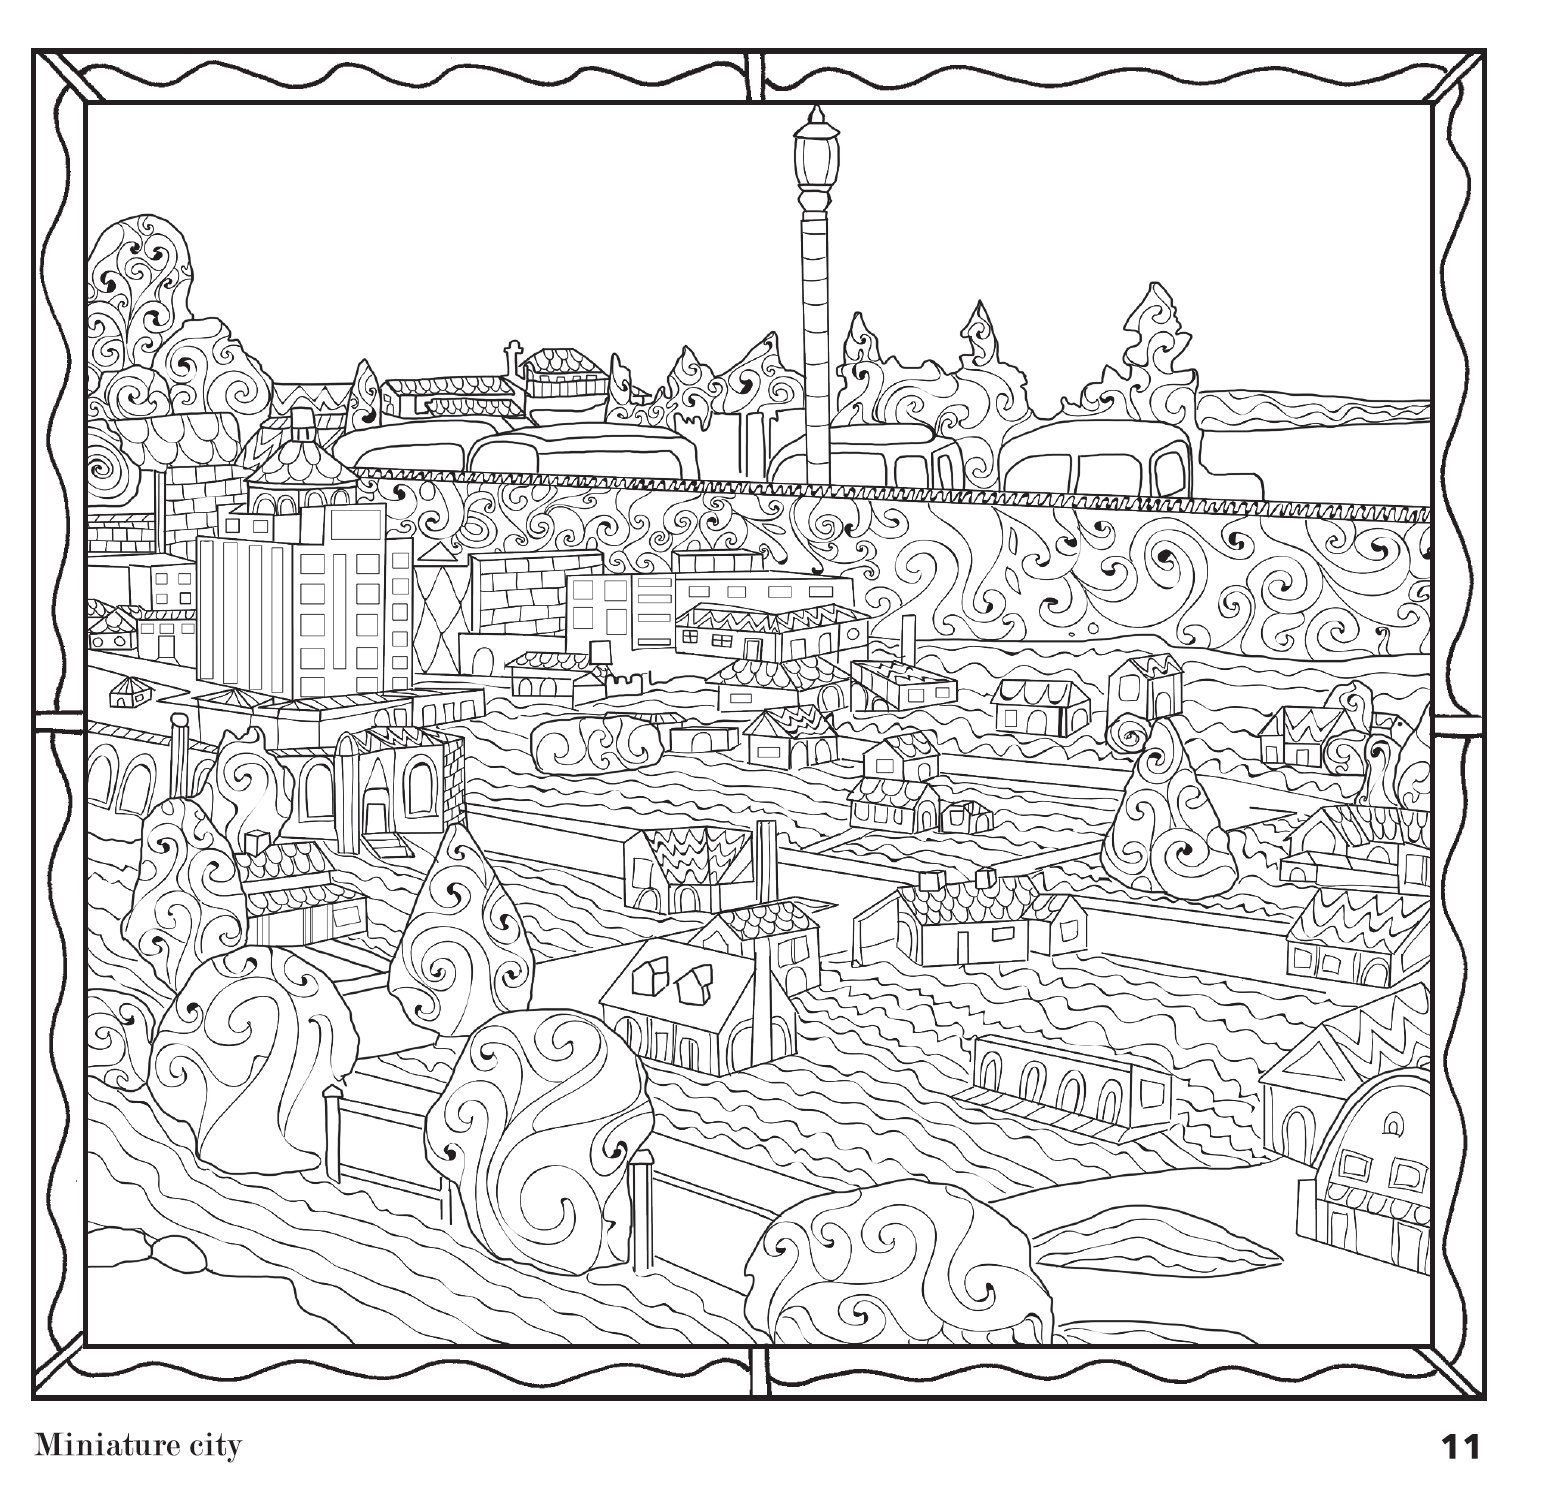 Amazon Etchings The Traverse City Coloring Book For Grown Ups 9780970477828 Kristen M Hains Various Books